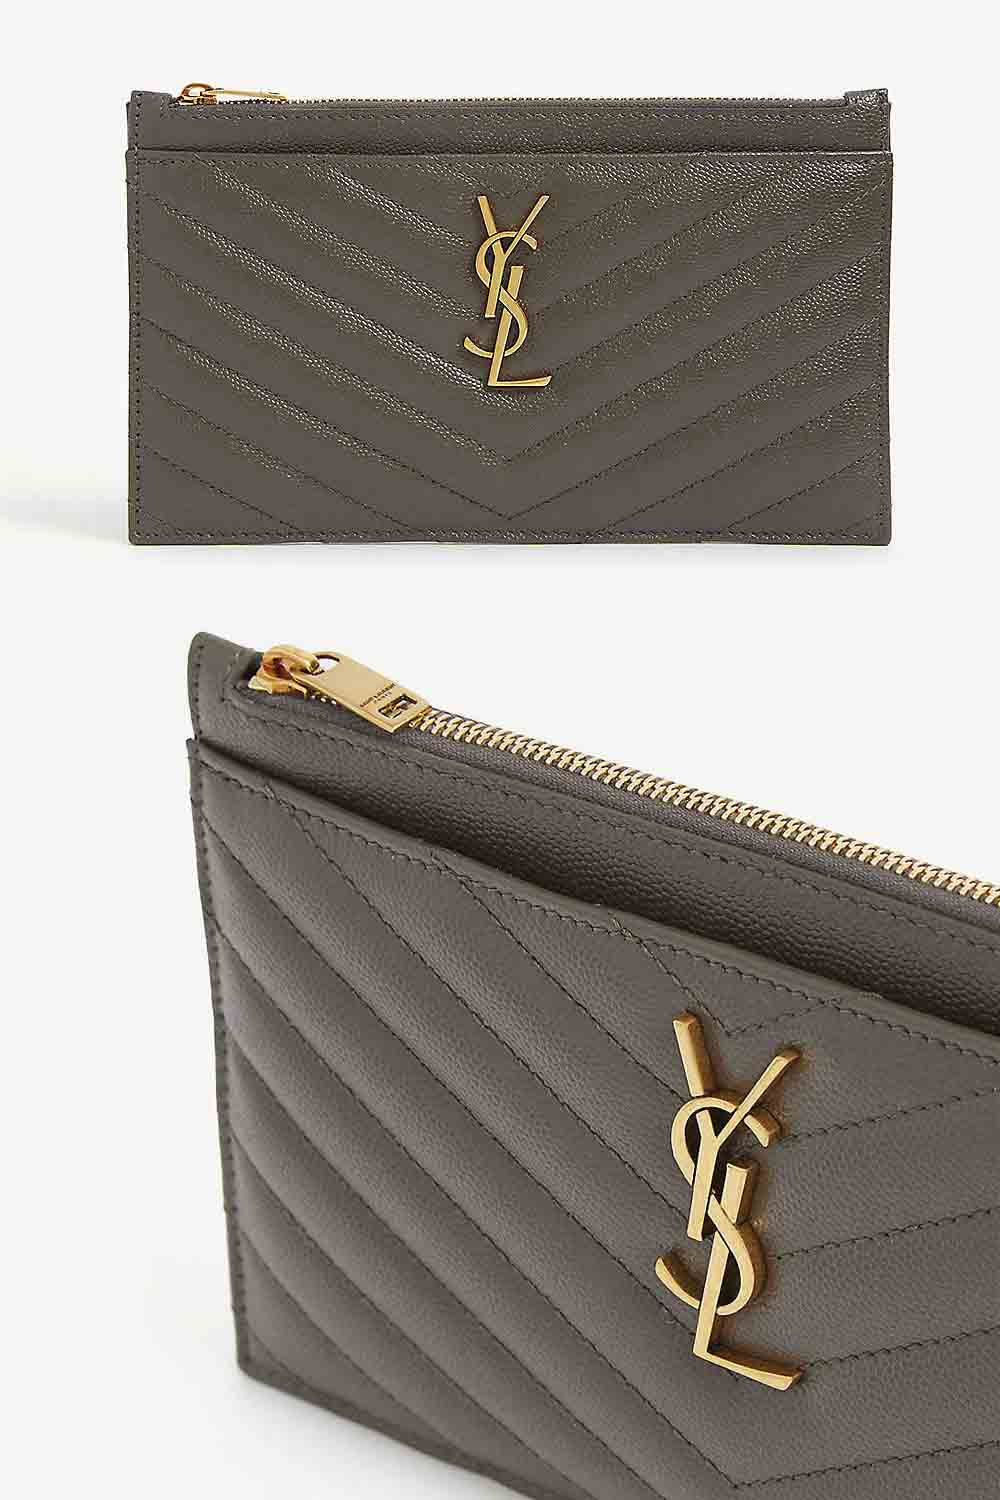 The-best-luxury-gifts-for-her-women-SAINT-LAURENT-Monogram-quilted-leather-pouch-gift-idea